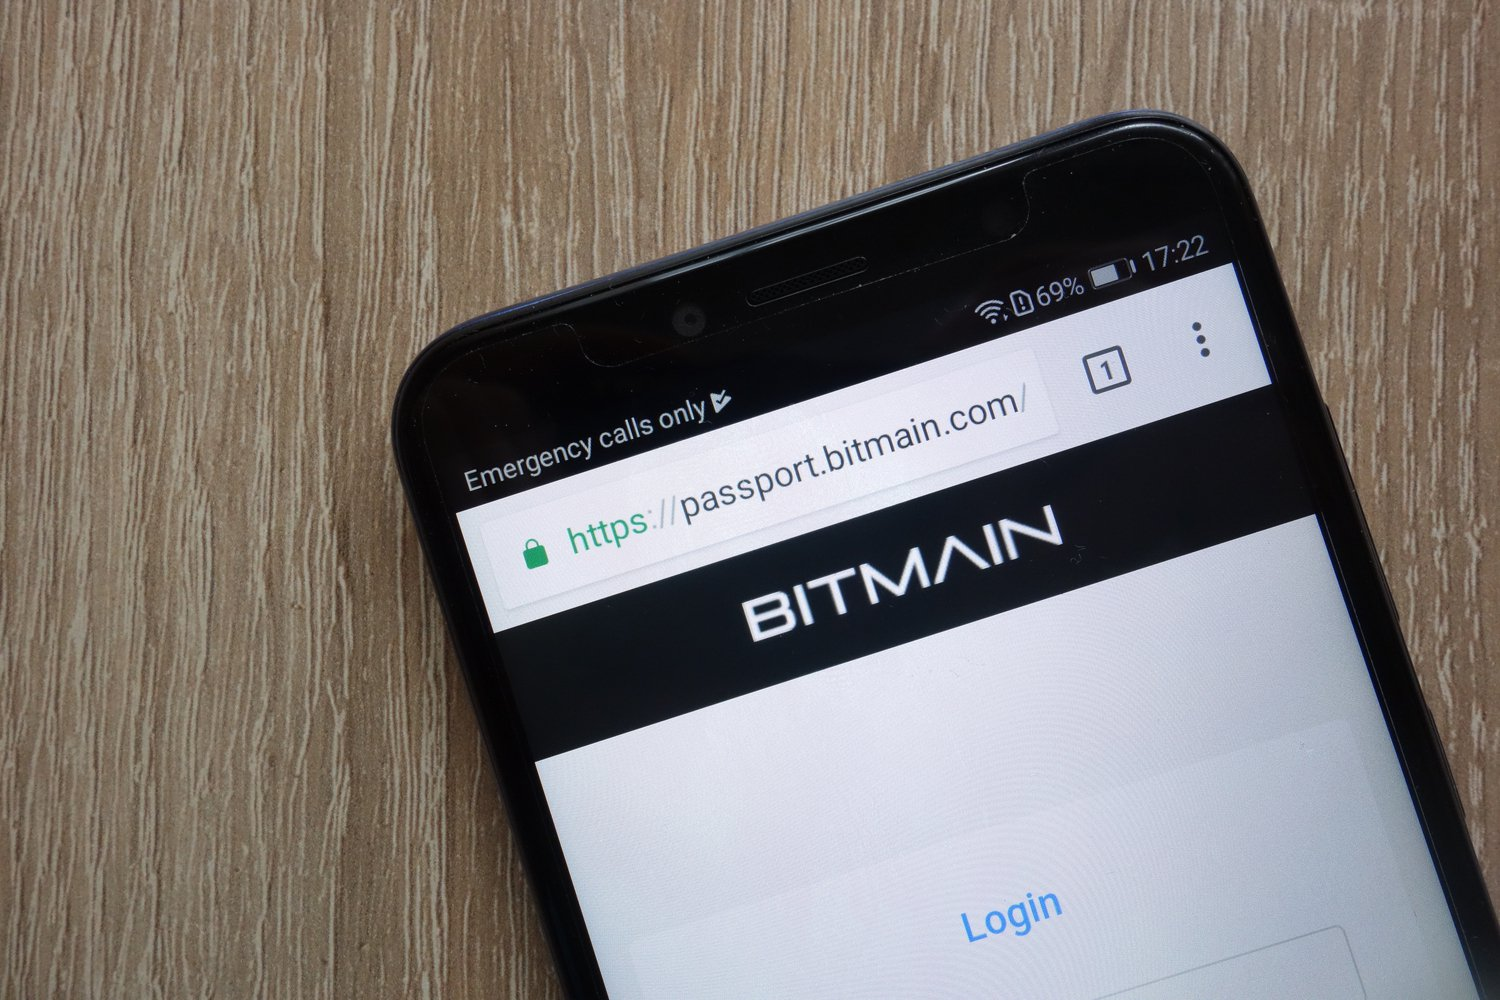 Mining Giant Bitmain Acquires Bitcoin Cash Wallet Startup